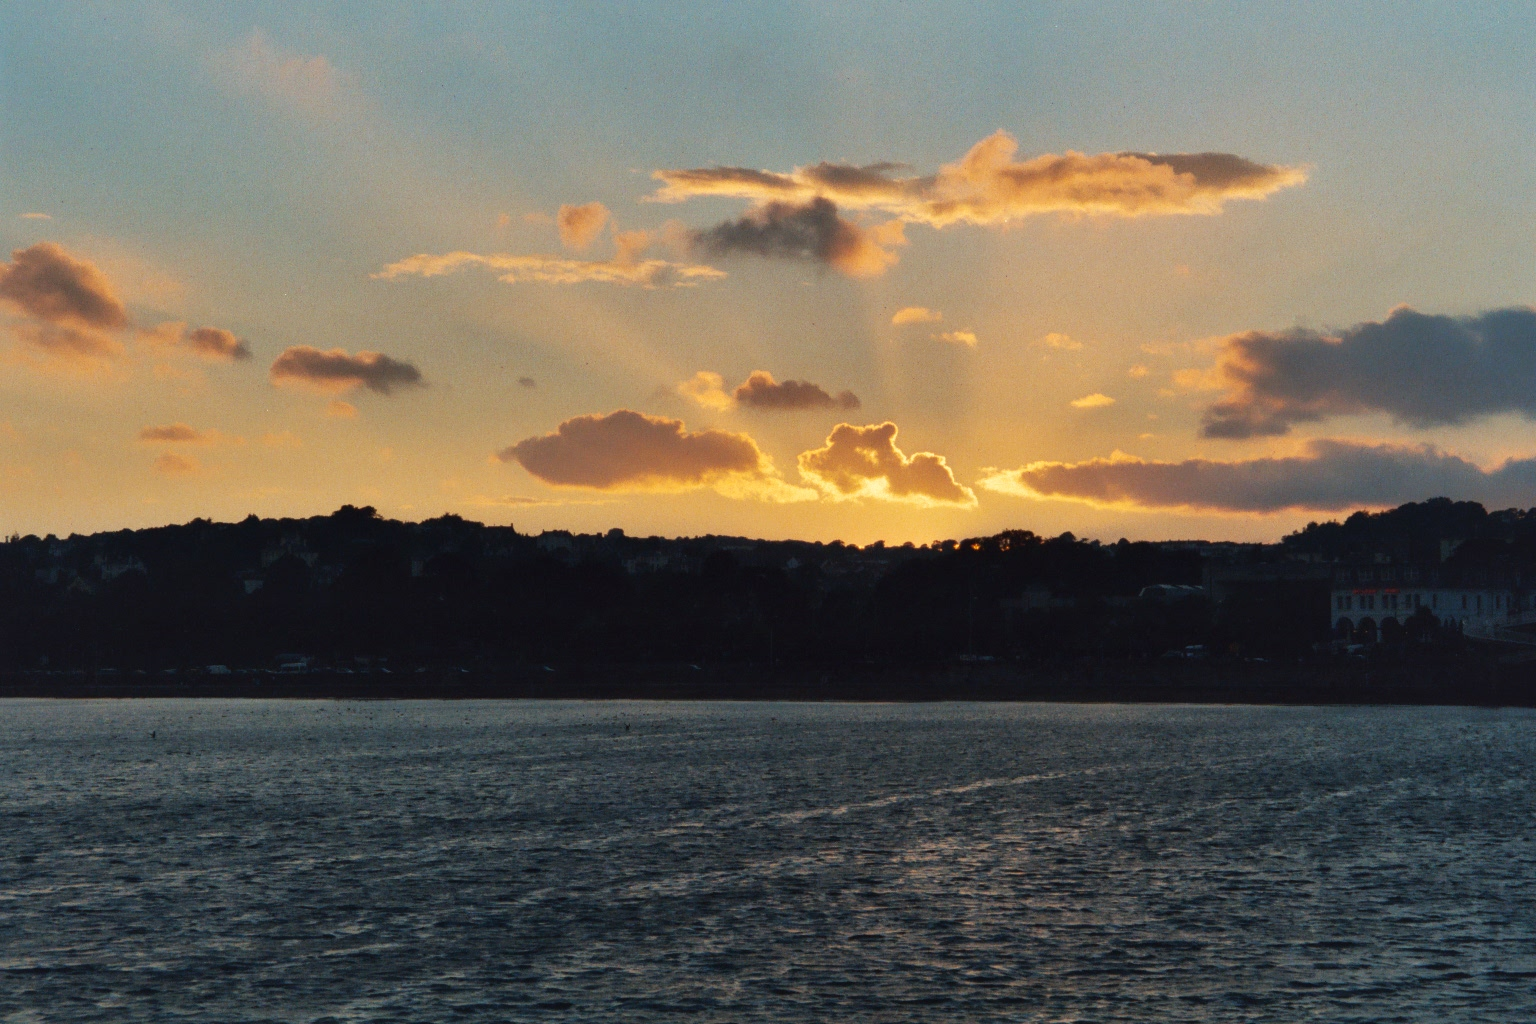 sunset over Torquay from The English Channel